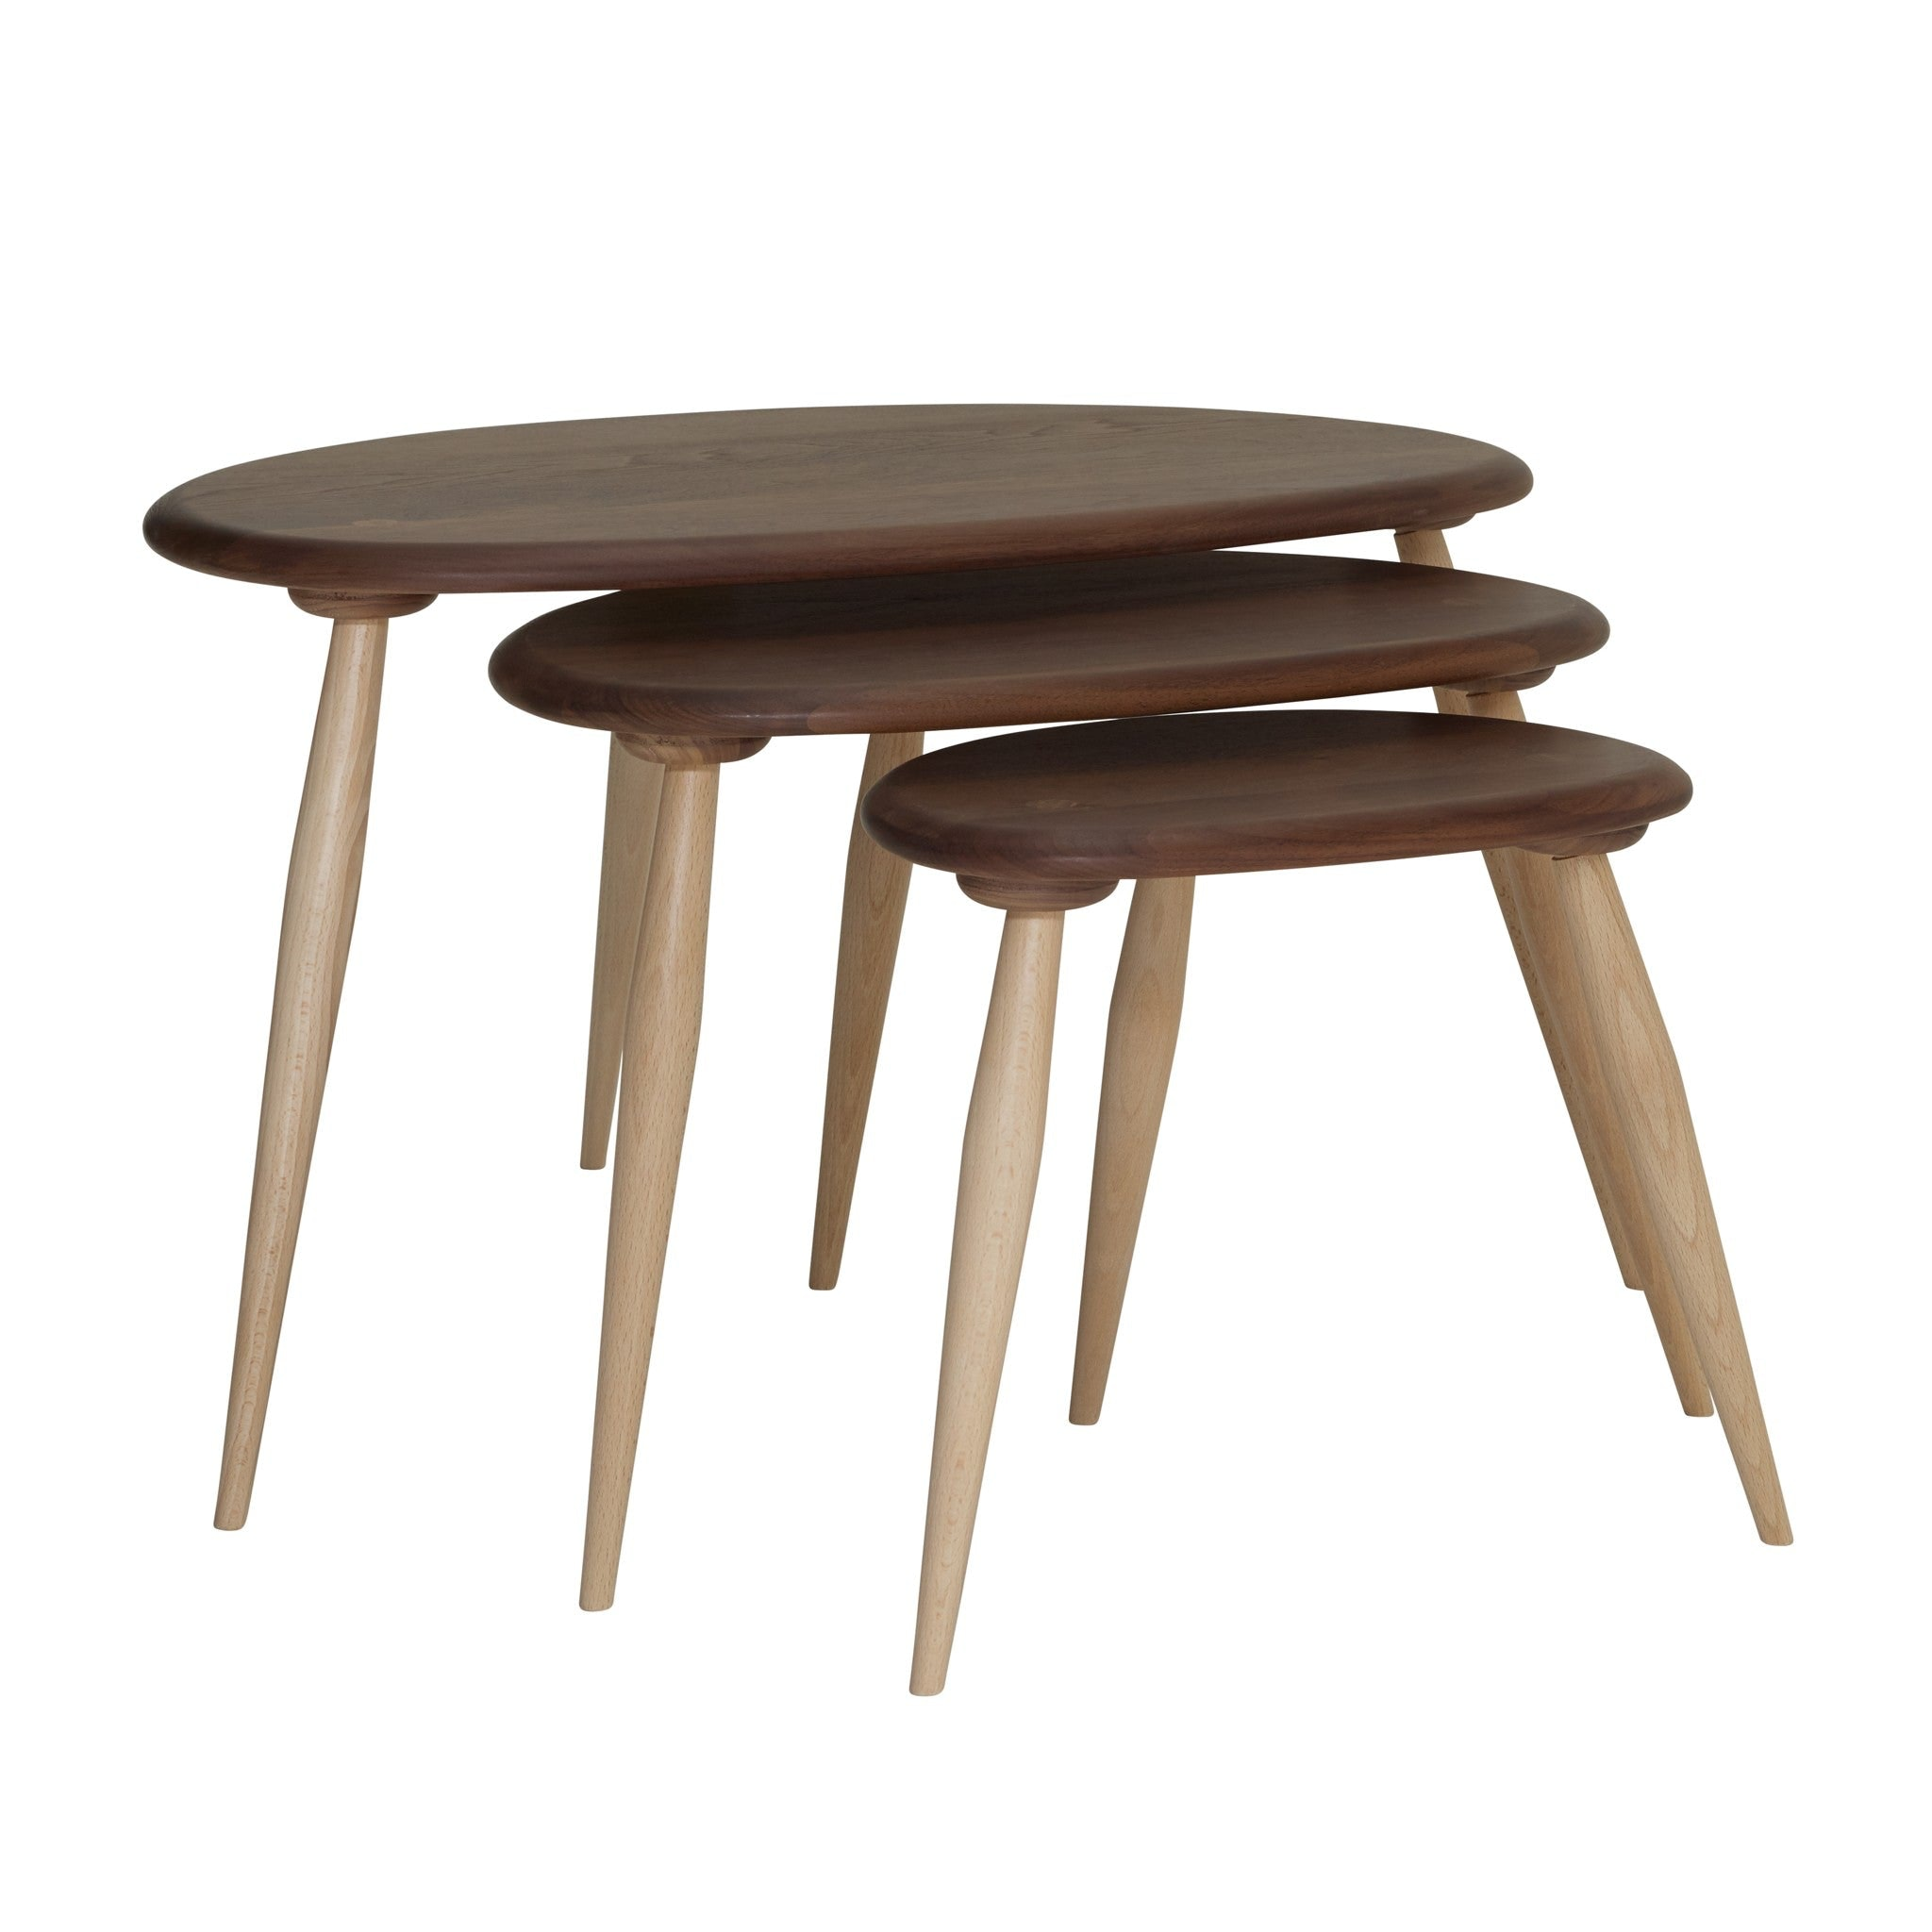 Originals Nest of Tables with Walnut Top by Ercol